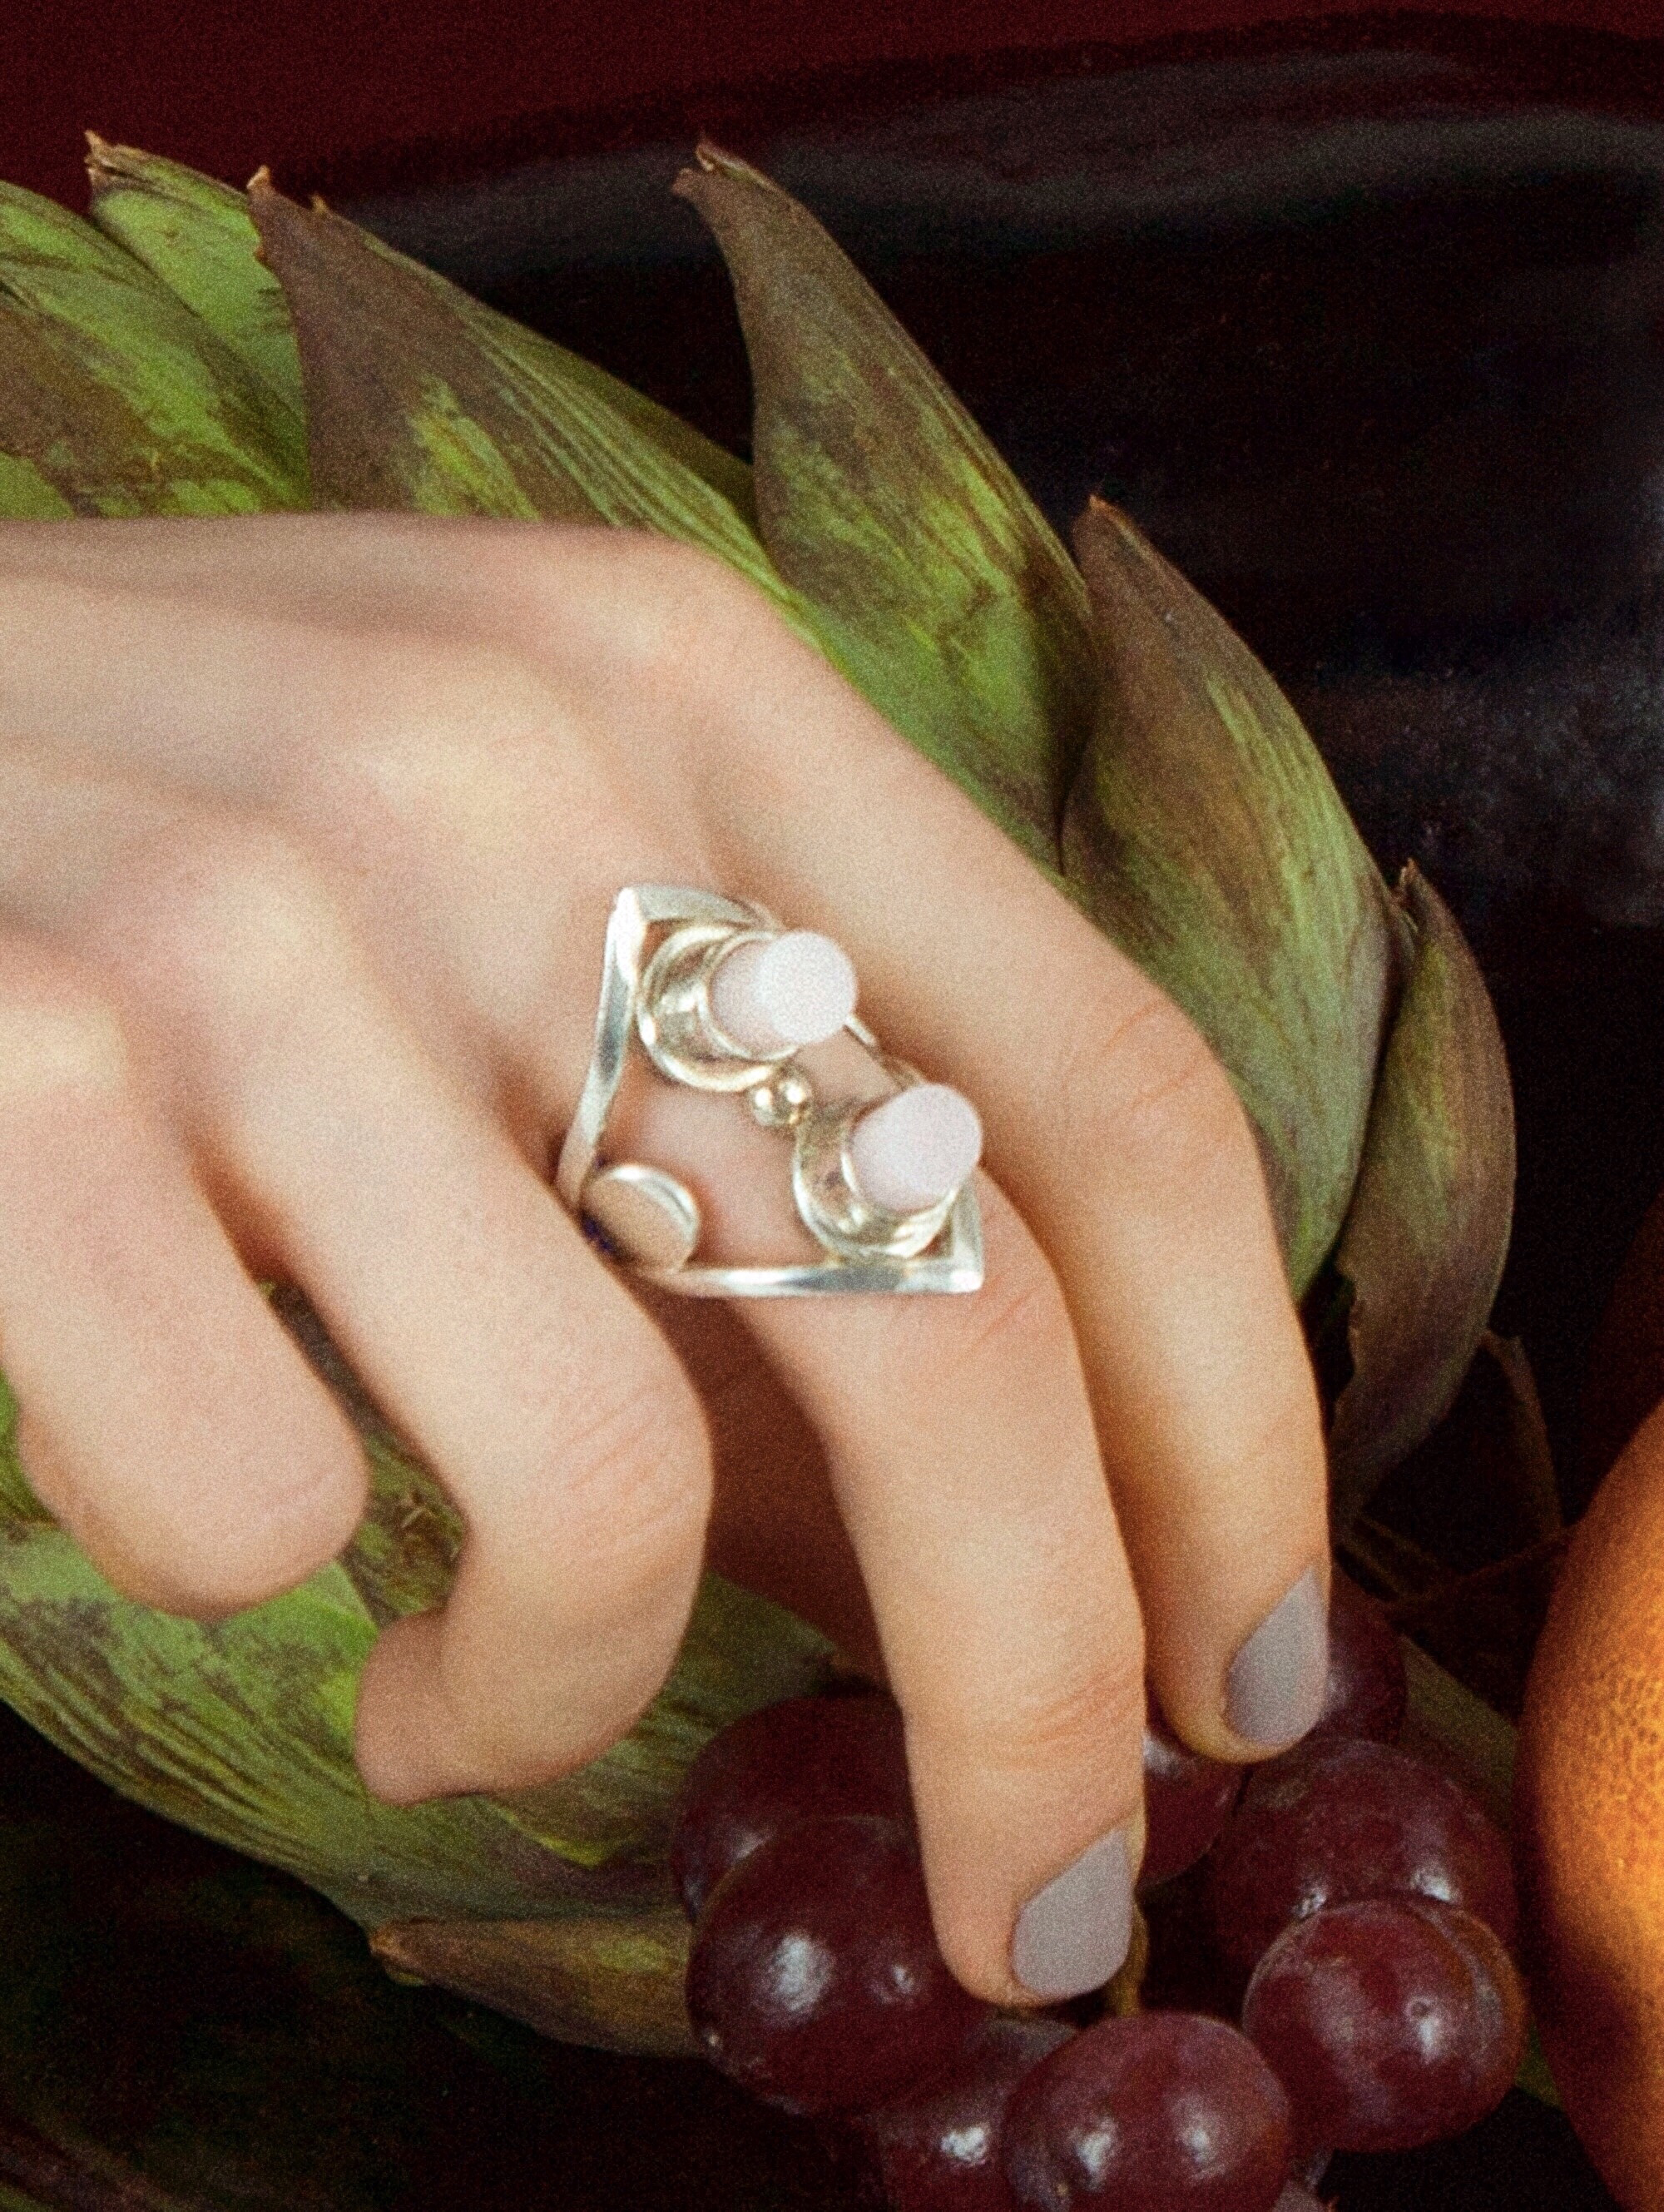 Wednesday Jewellery Cylinder Ring, opal stones